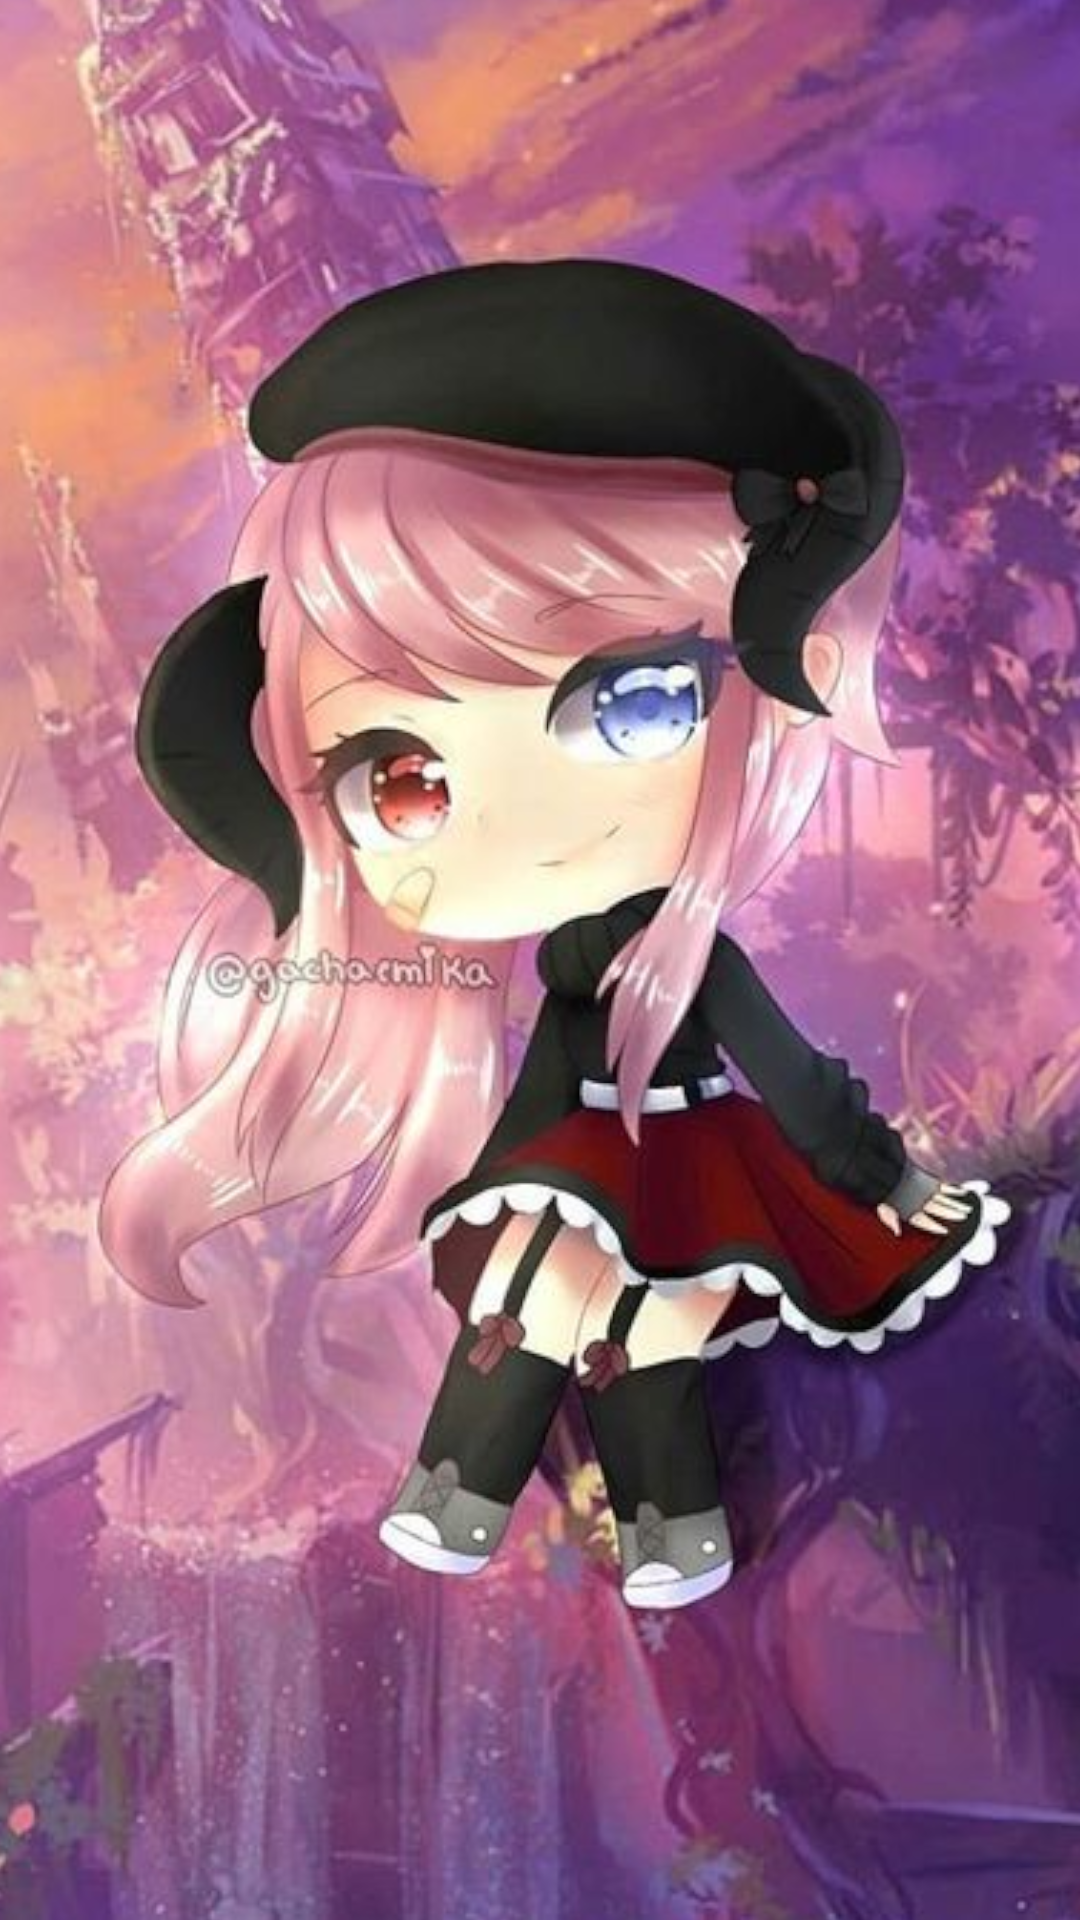 Gacha Life Wallpaper Anime Backgrounds Wallpapers Cute Drawings Cute Anime Character